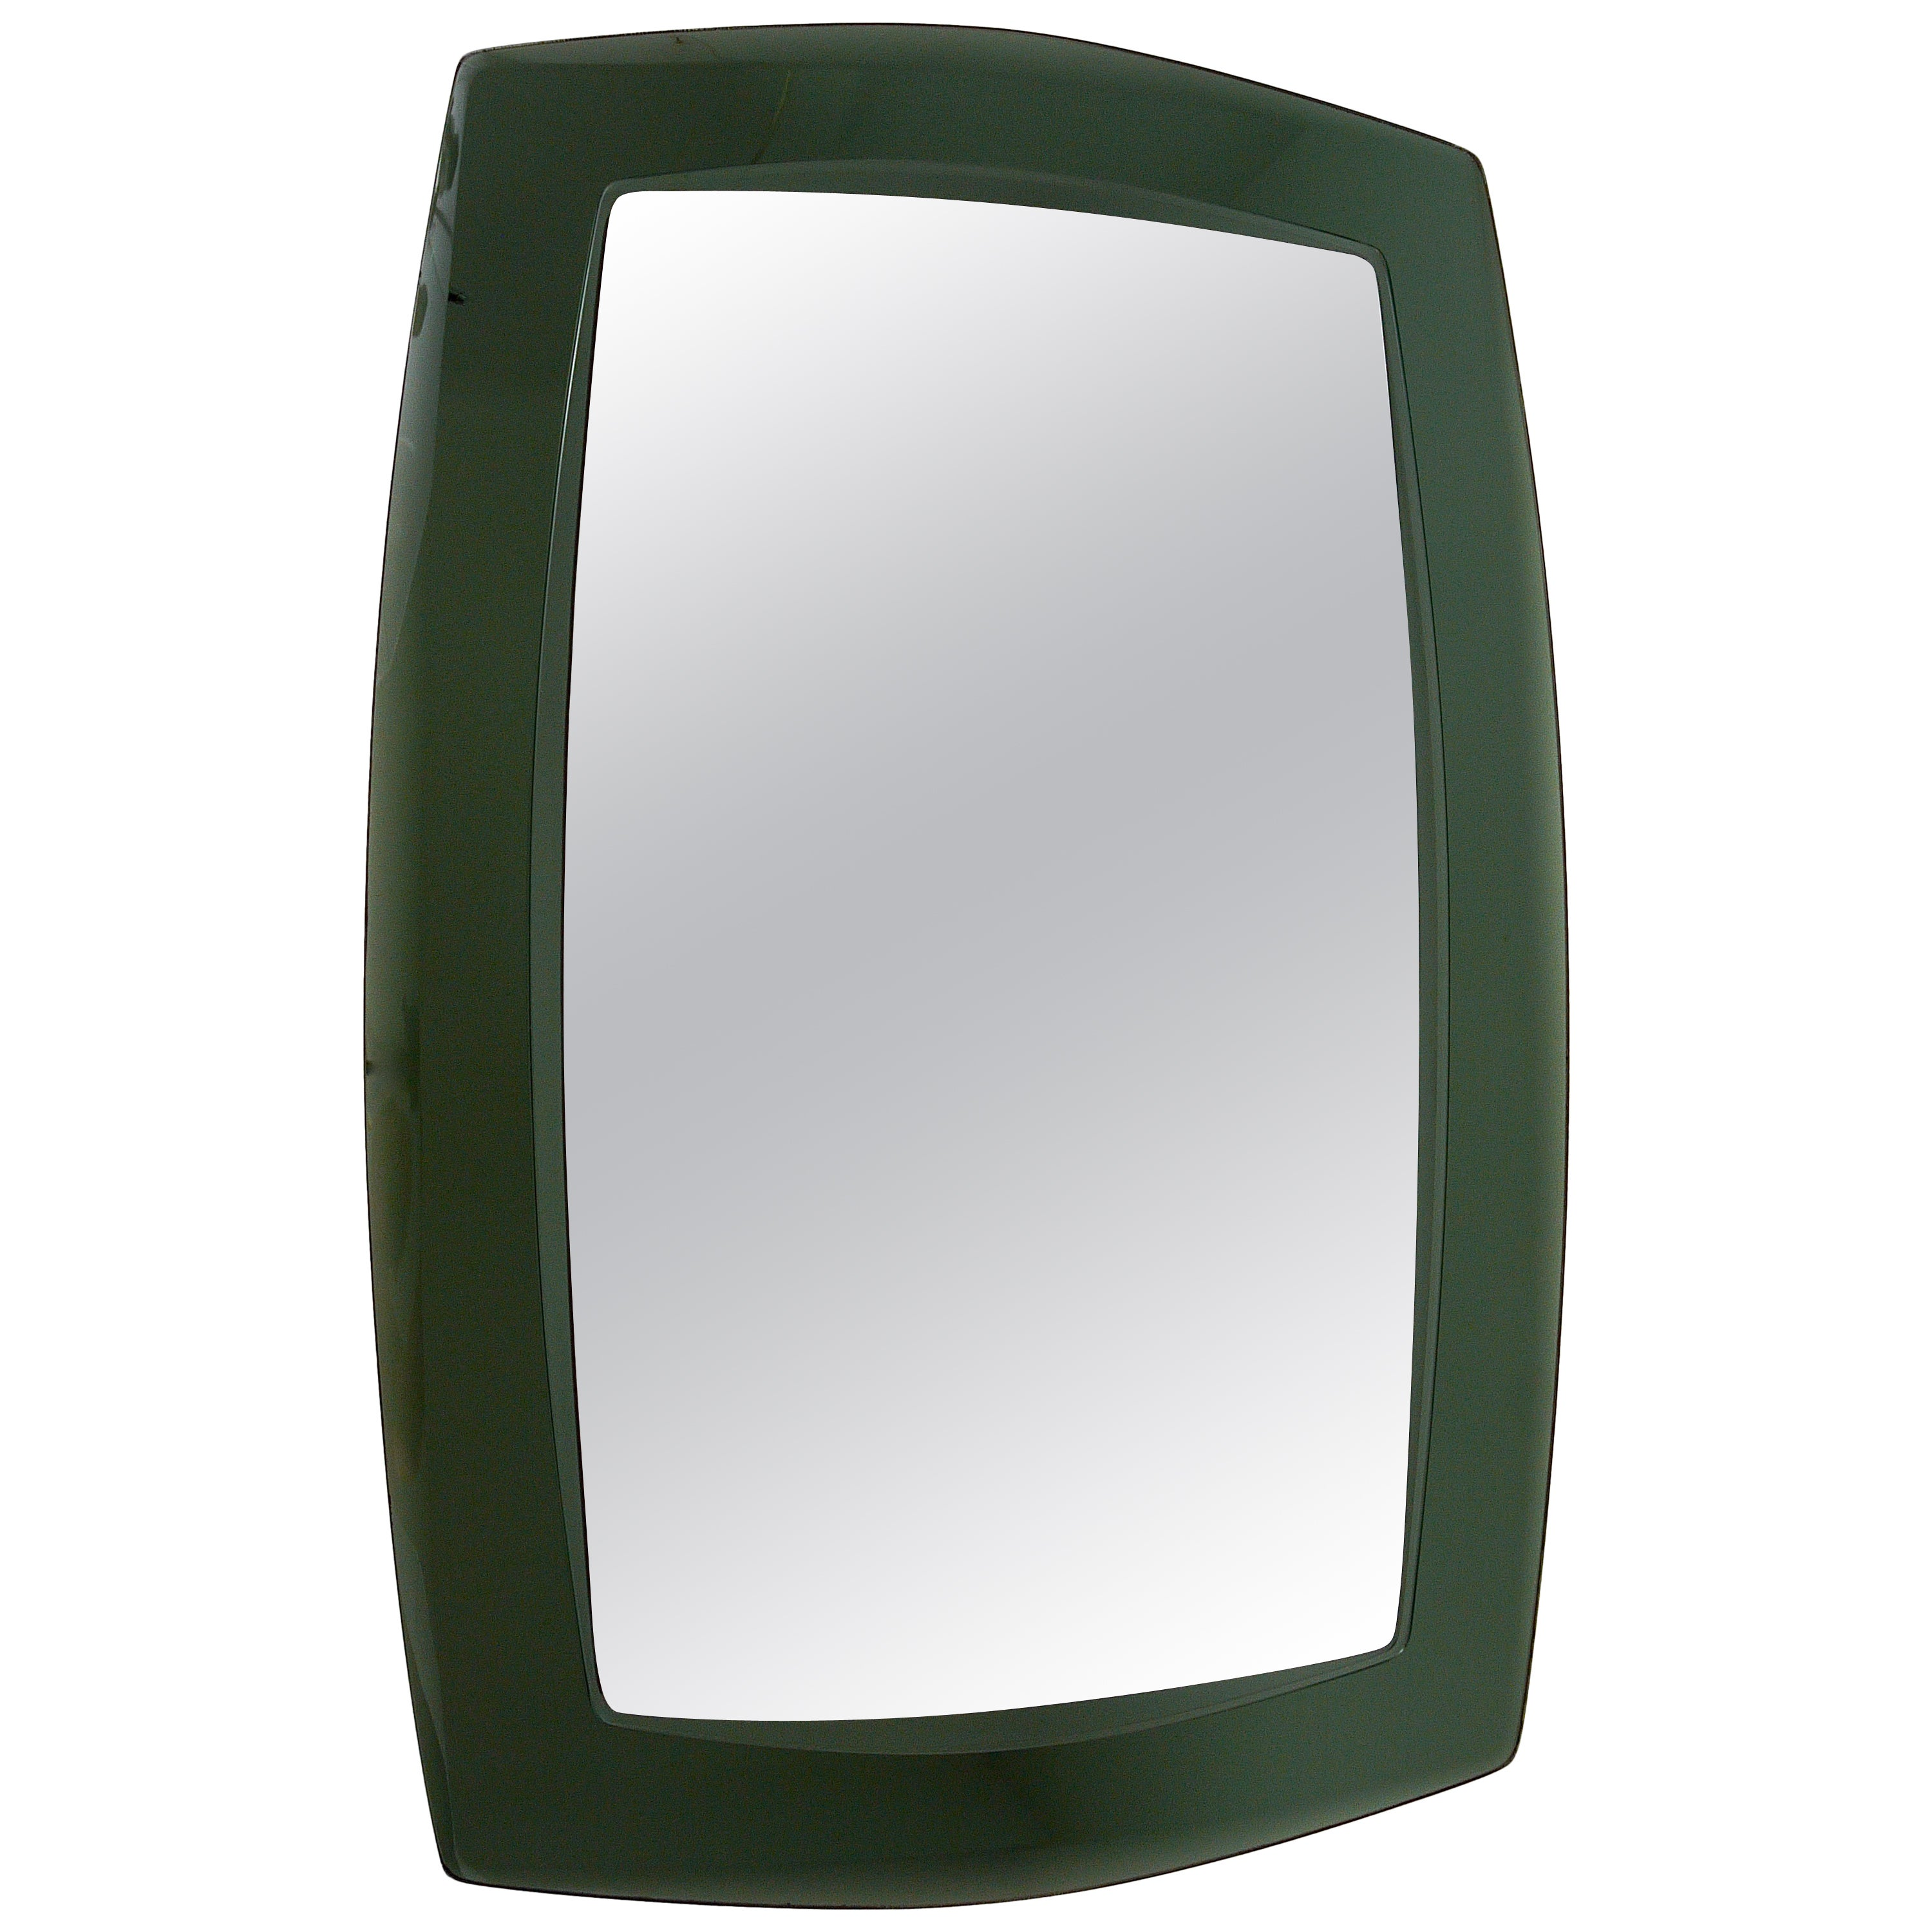 Large Grey/Green Cristal Art Faceted Modernist Wall Mirror, Italy, 1960s